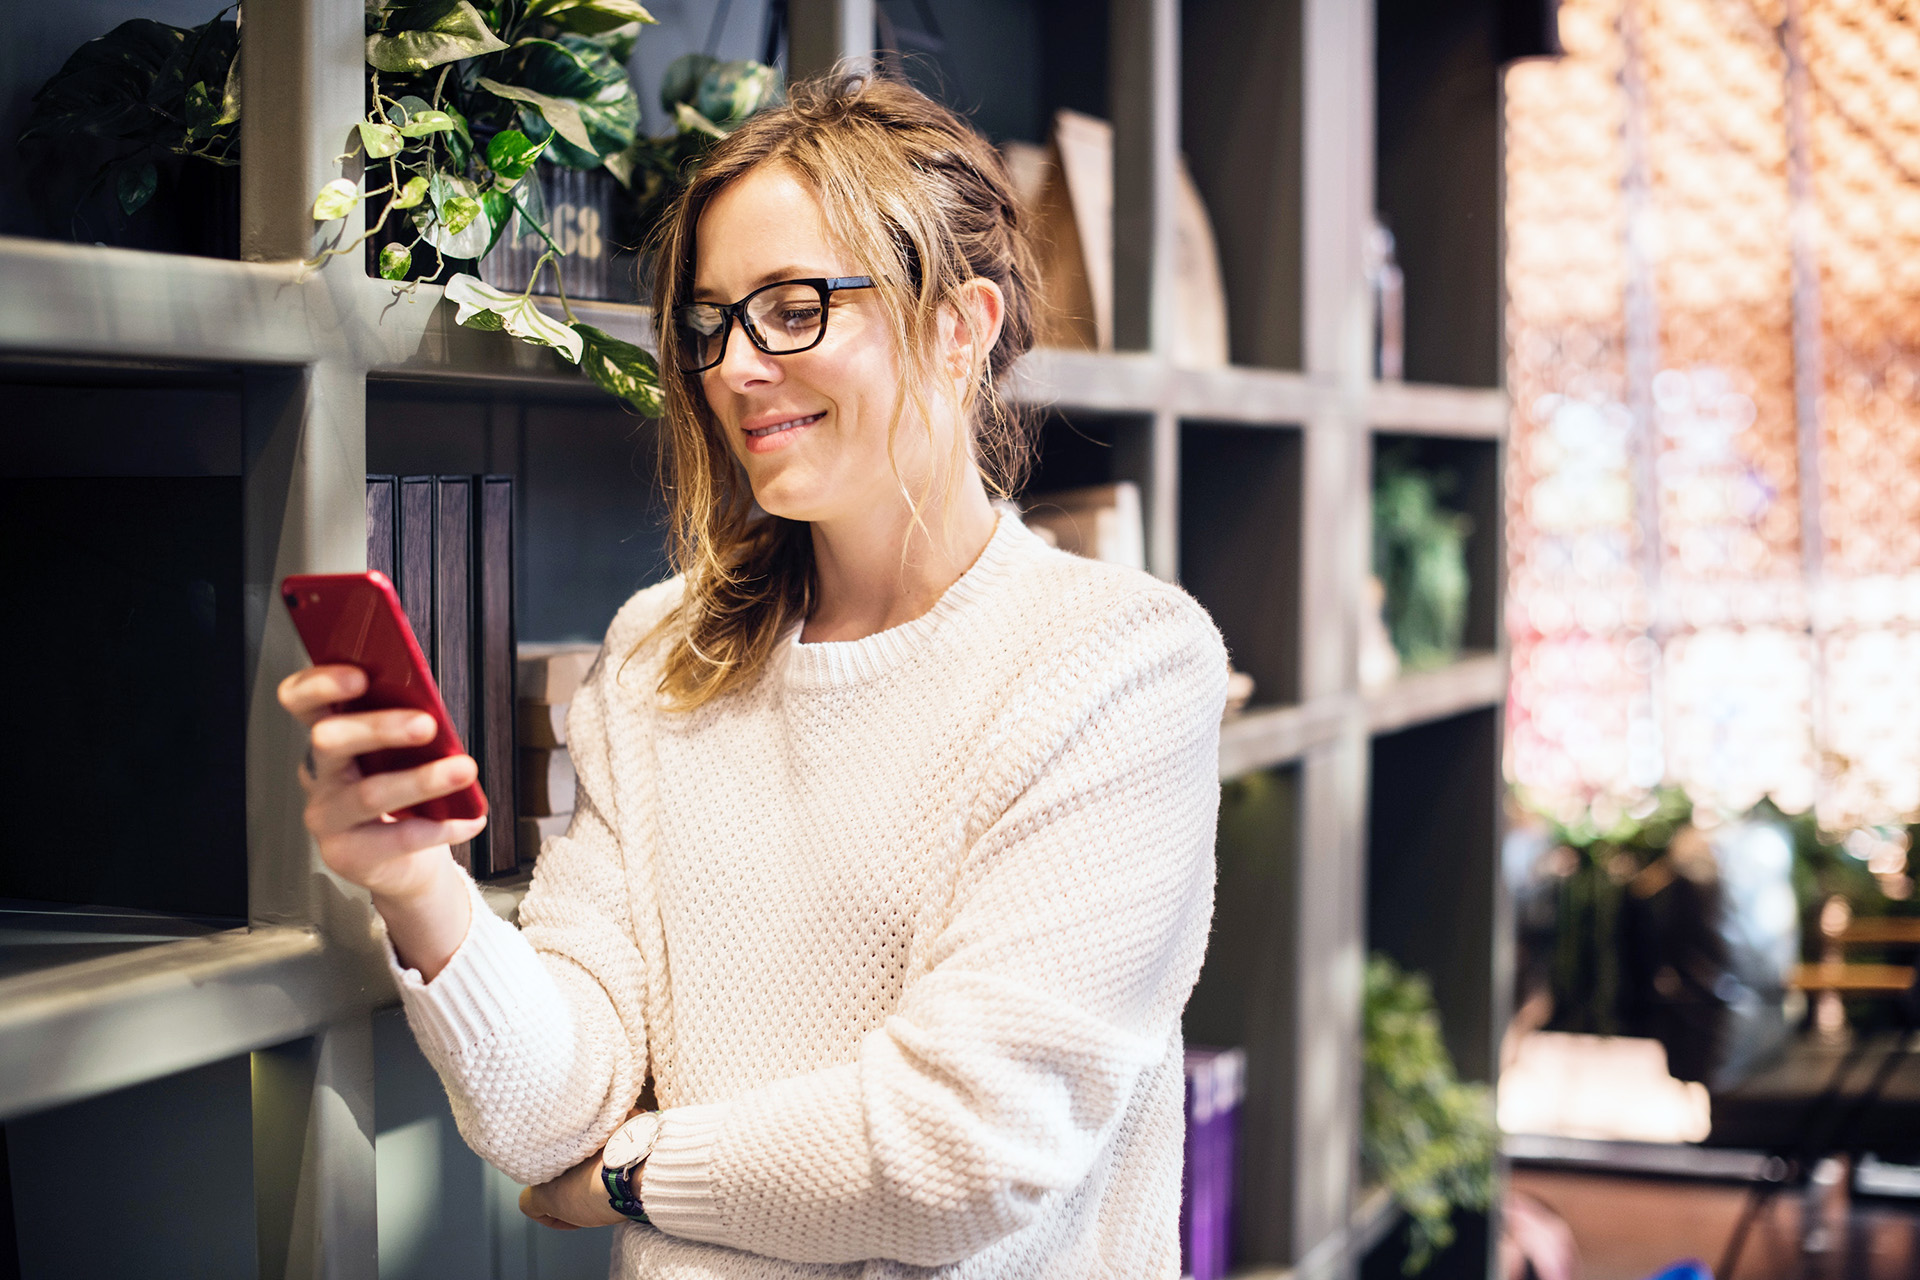 Pinterest Communities - what are they and how to create one. Woman looking at her phone and smiling